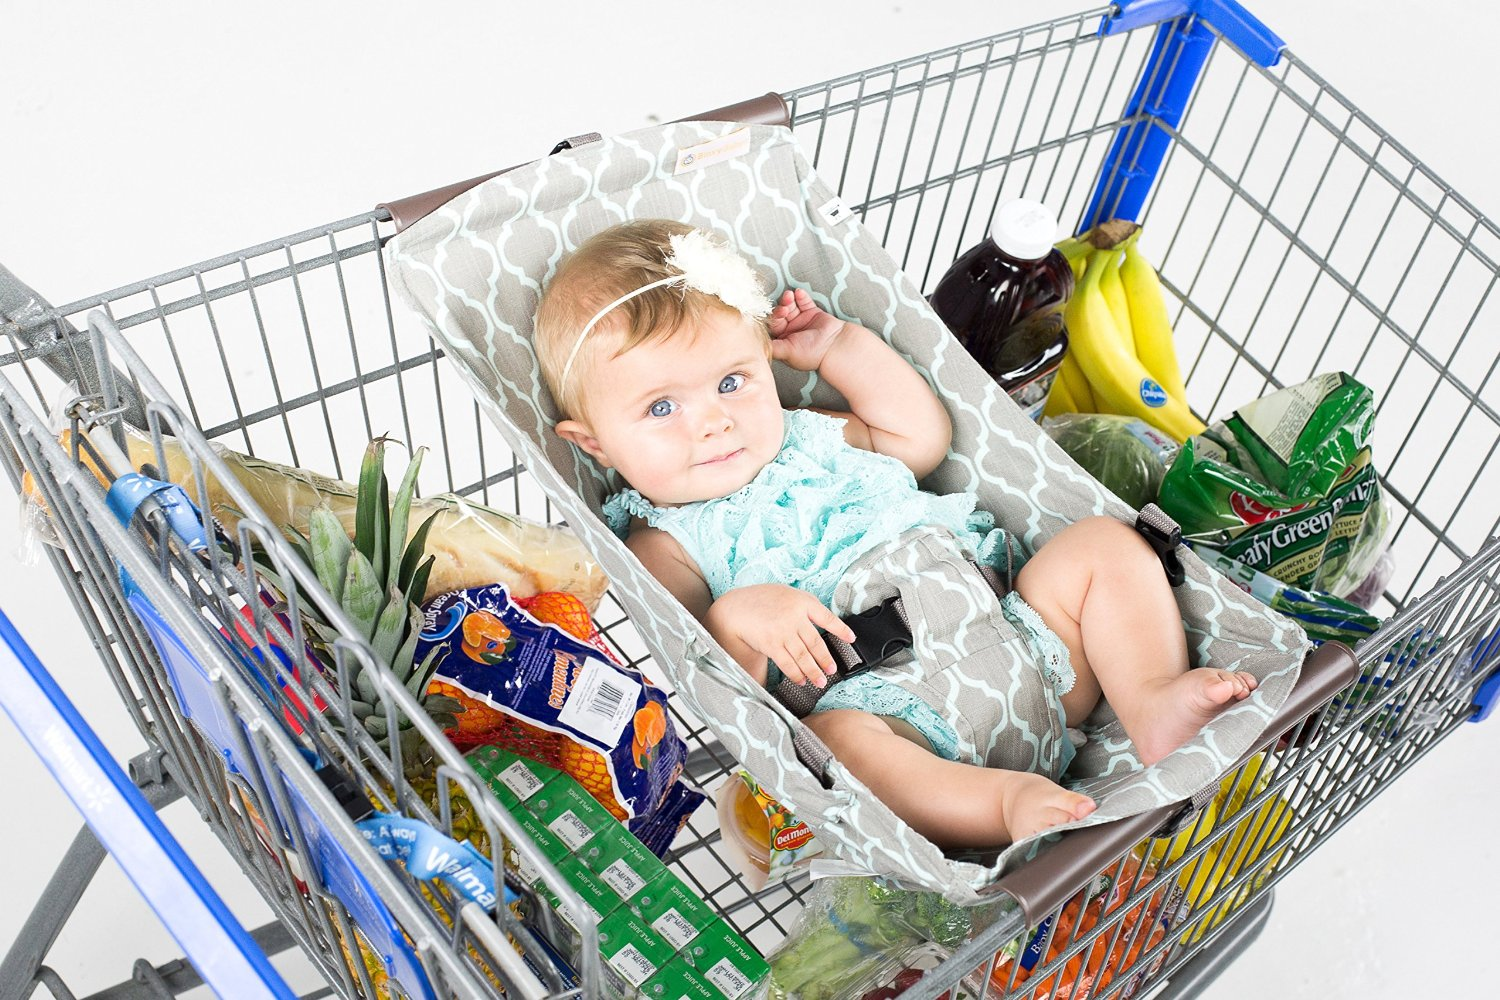 A shopping list is definitely a must, as it can help you keep track of the baby supplies you've already purchased and the stuff you still need. From big purchases like nursery furniture and bottle-feeding equipment to smaller items like diapers and burp cloths, you can find everything you need for your new baby at Every Day Low Prices at Walmart.